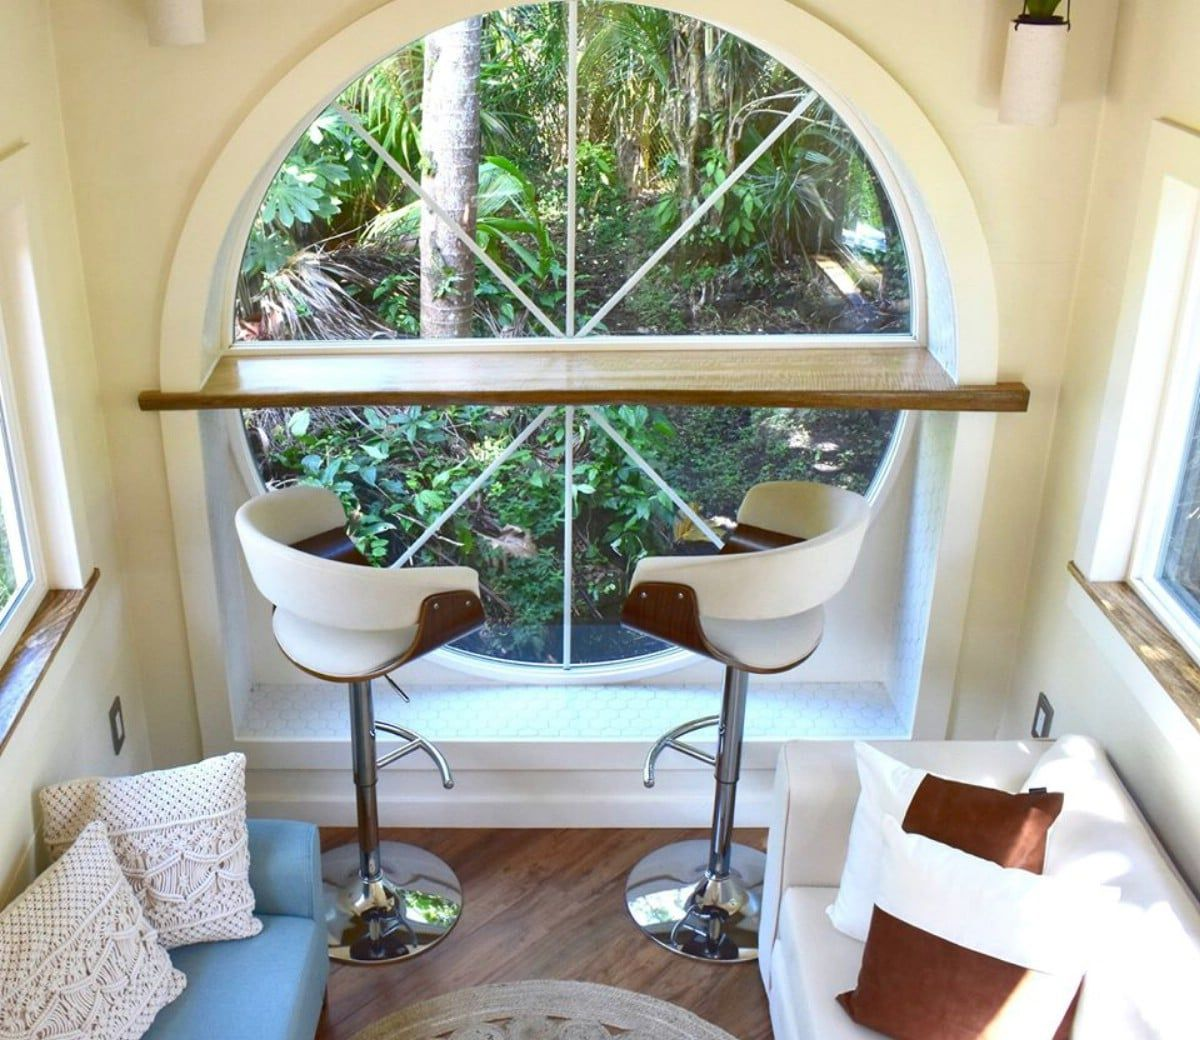 oasis tiny house 12 - Hawaiian tiny house is stacked with space-saving solutions including a shower jutting out over the trailer's tongue